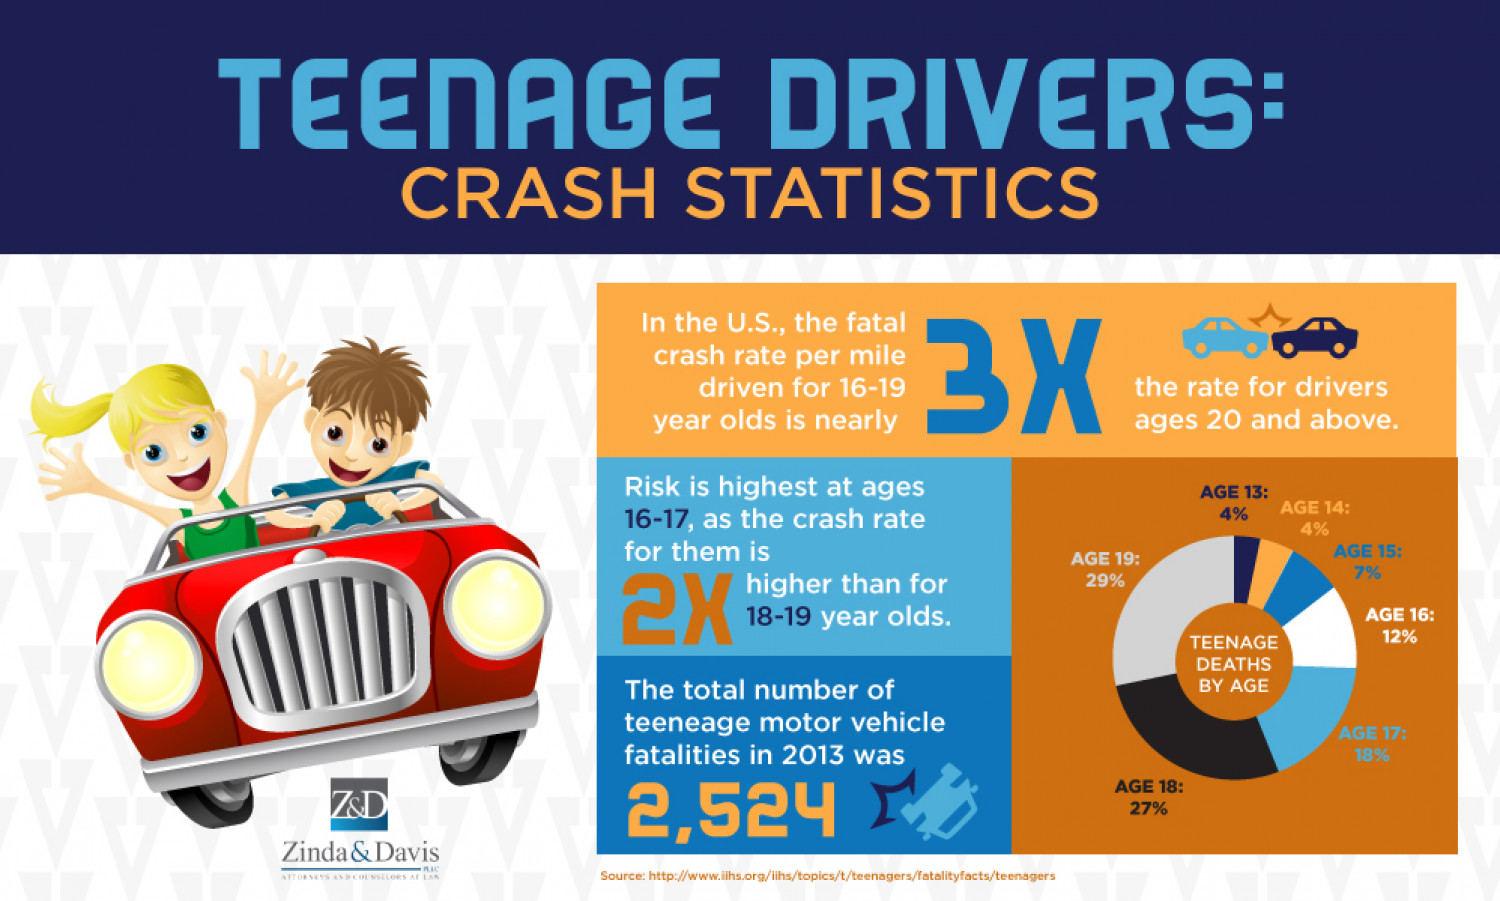 Teen Drivers: Get the Facts Motor Vehicle Safety CDC